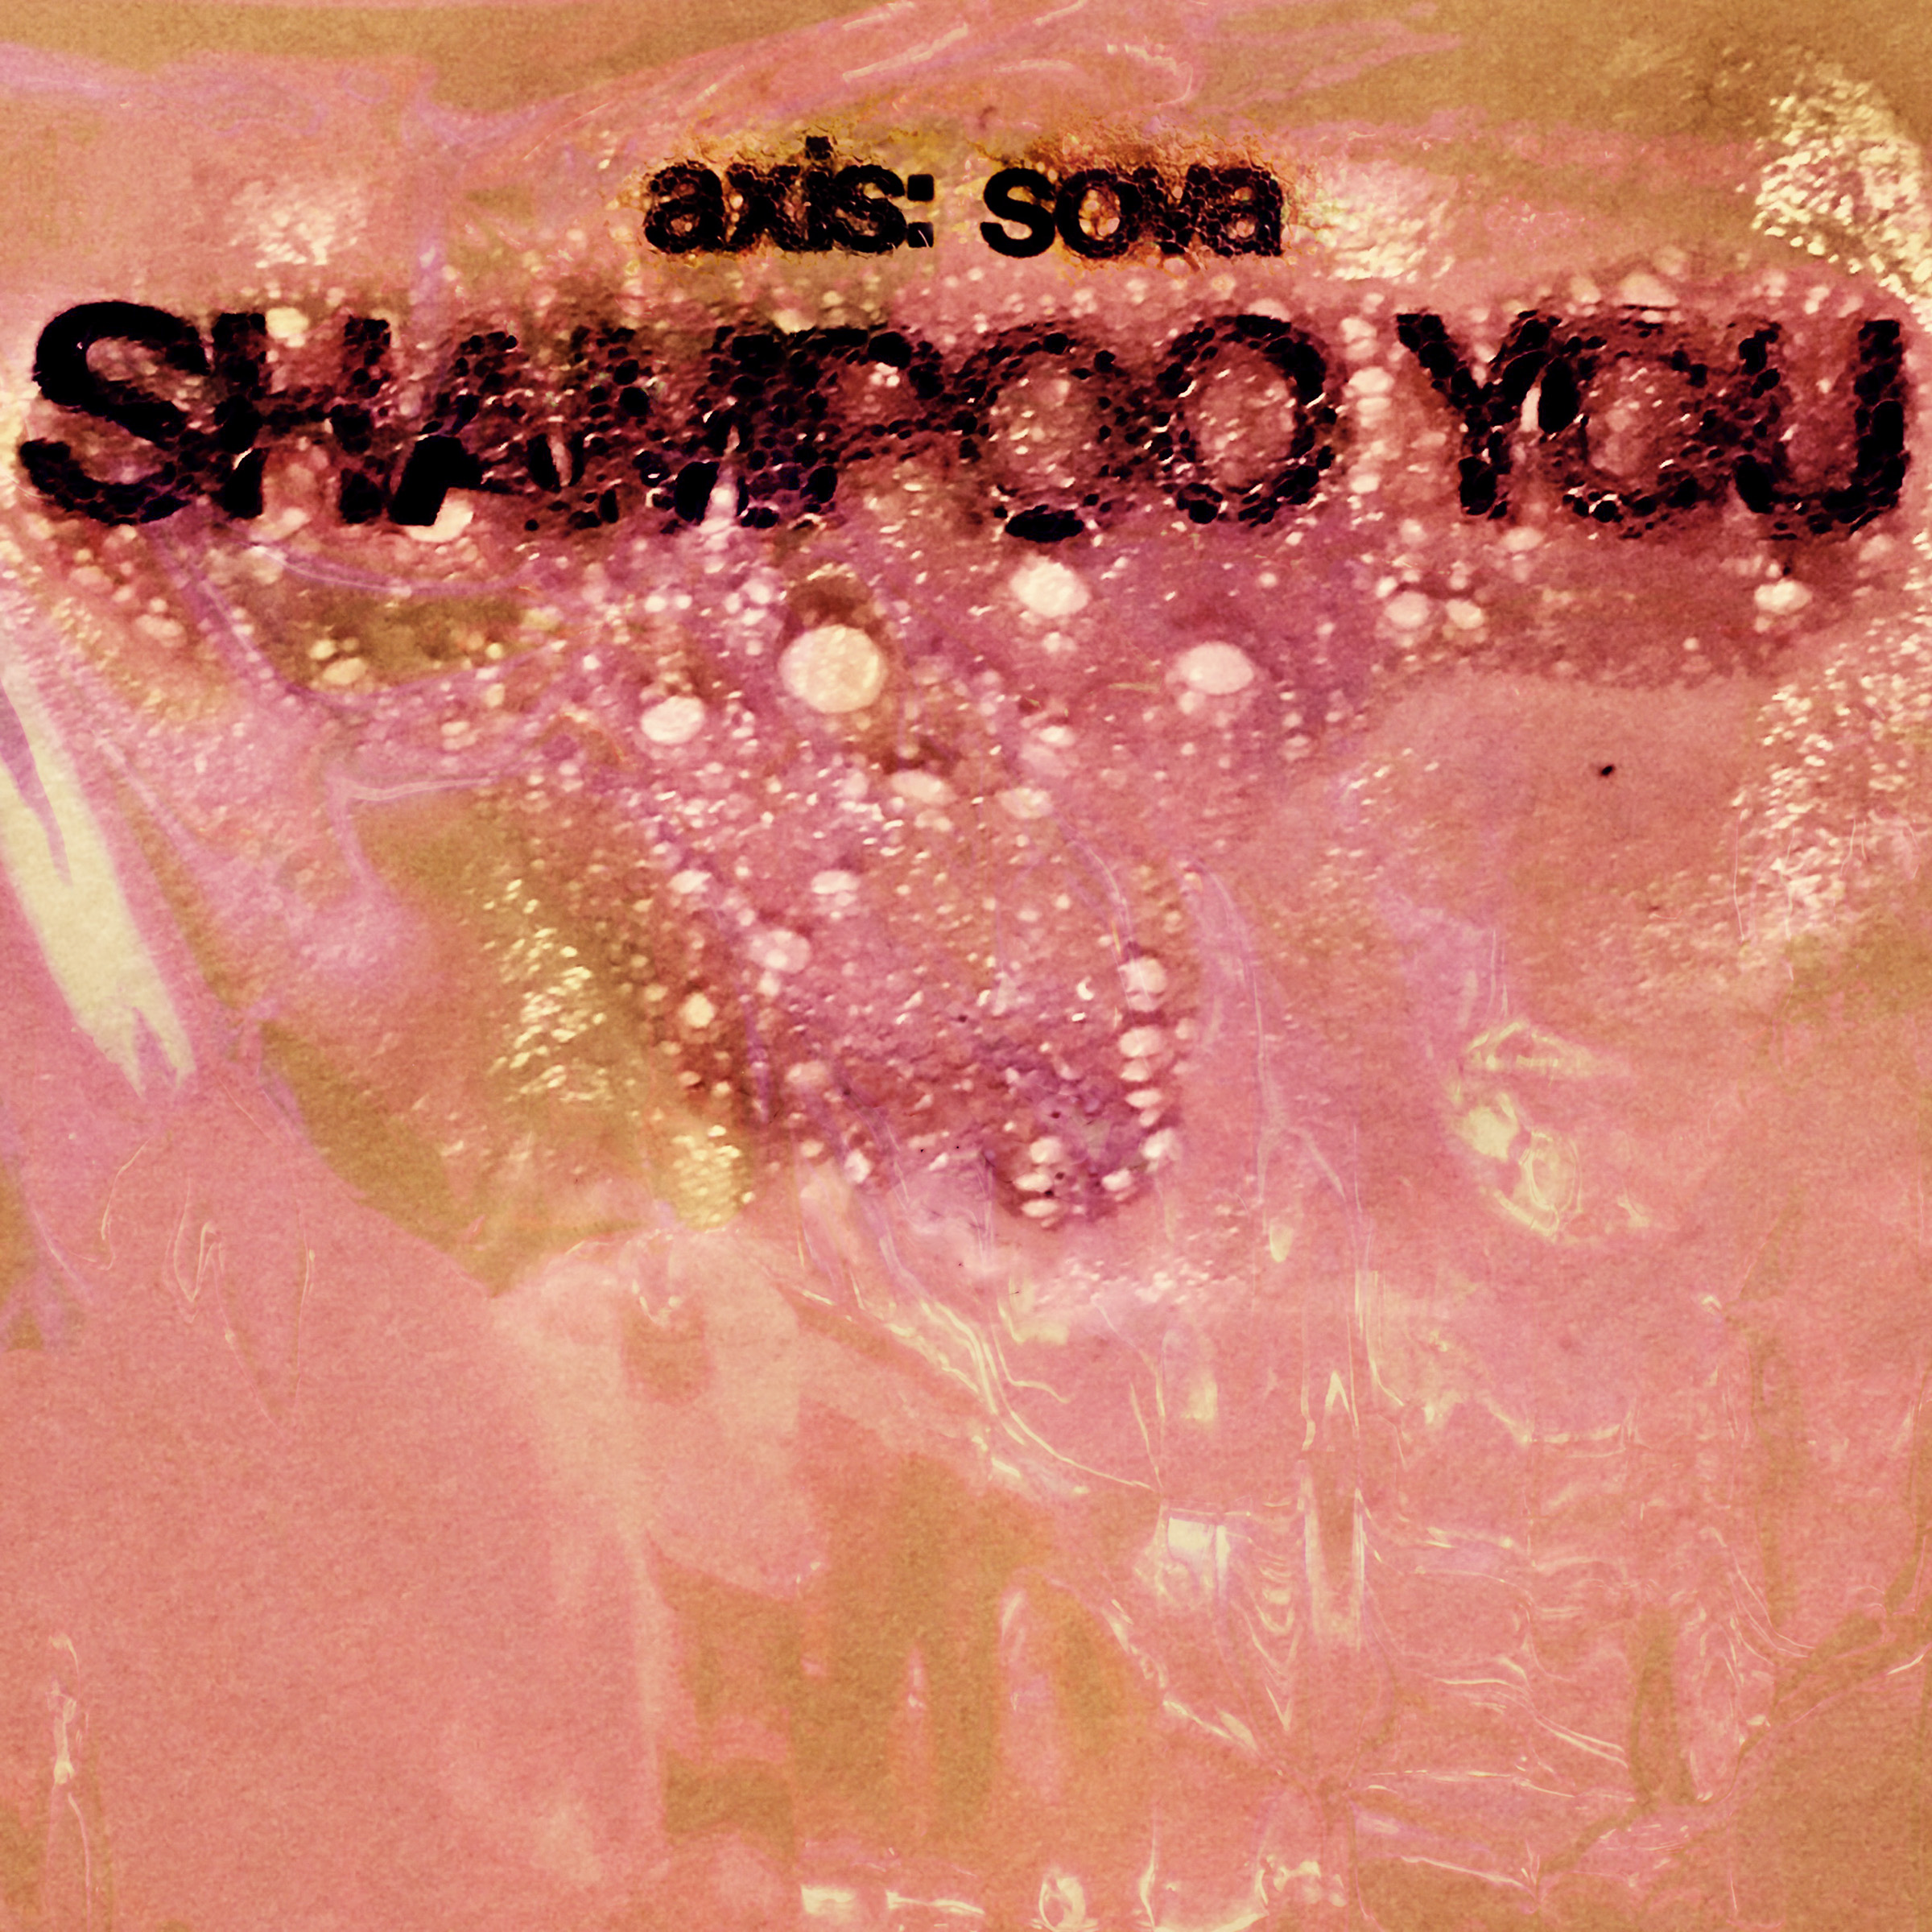 Album Review of 'Shampoo You' by Axis: Sova. The EP will be available via TY Segal's and Drag City imprint God? Records, on Niovember 16th